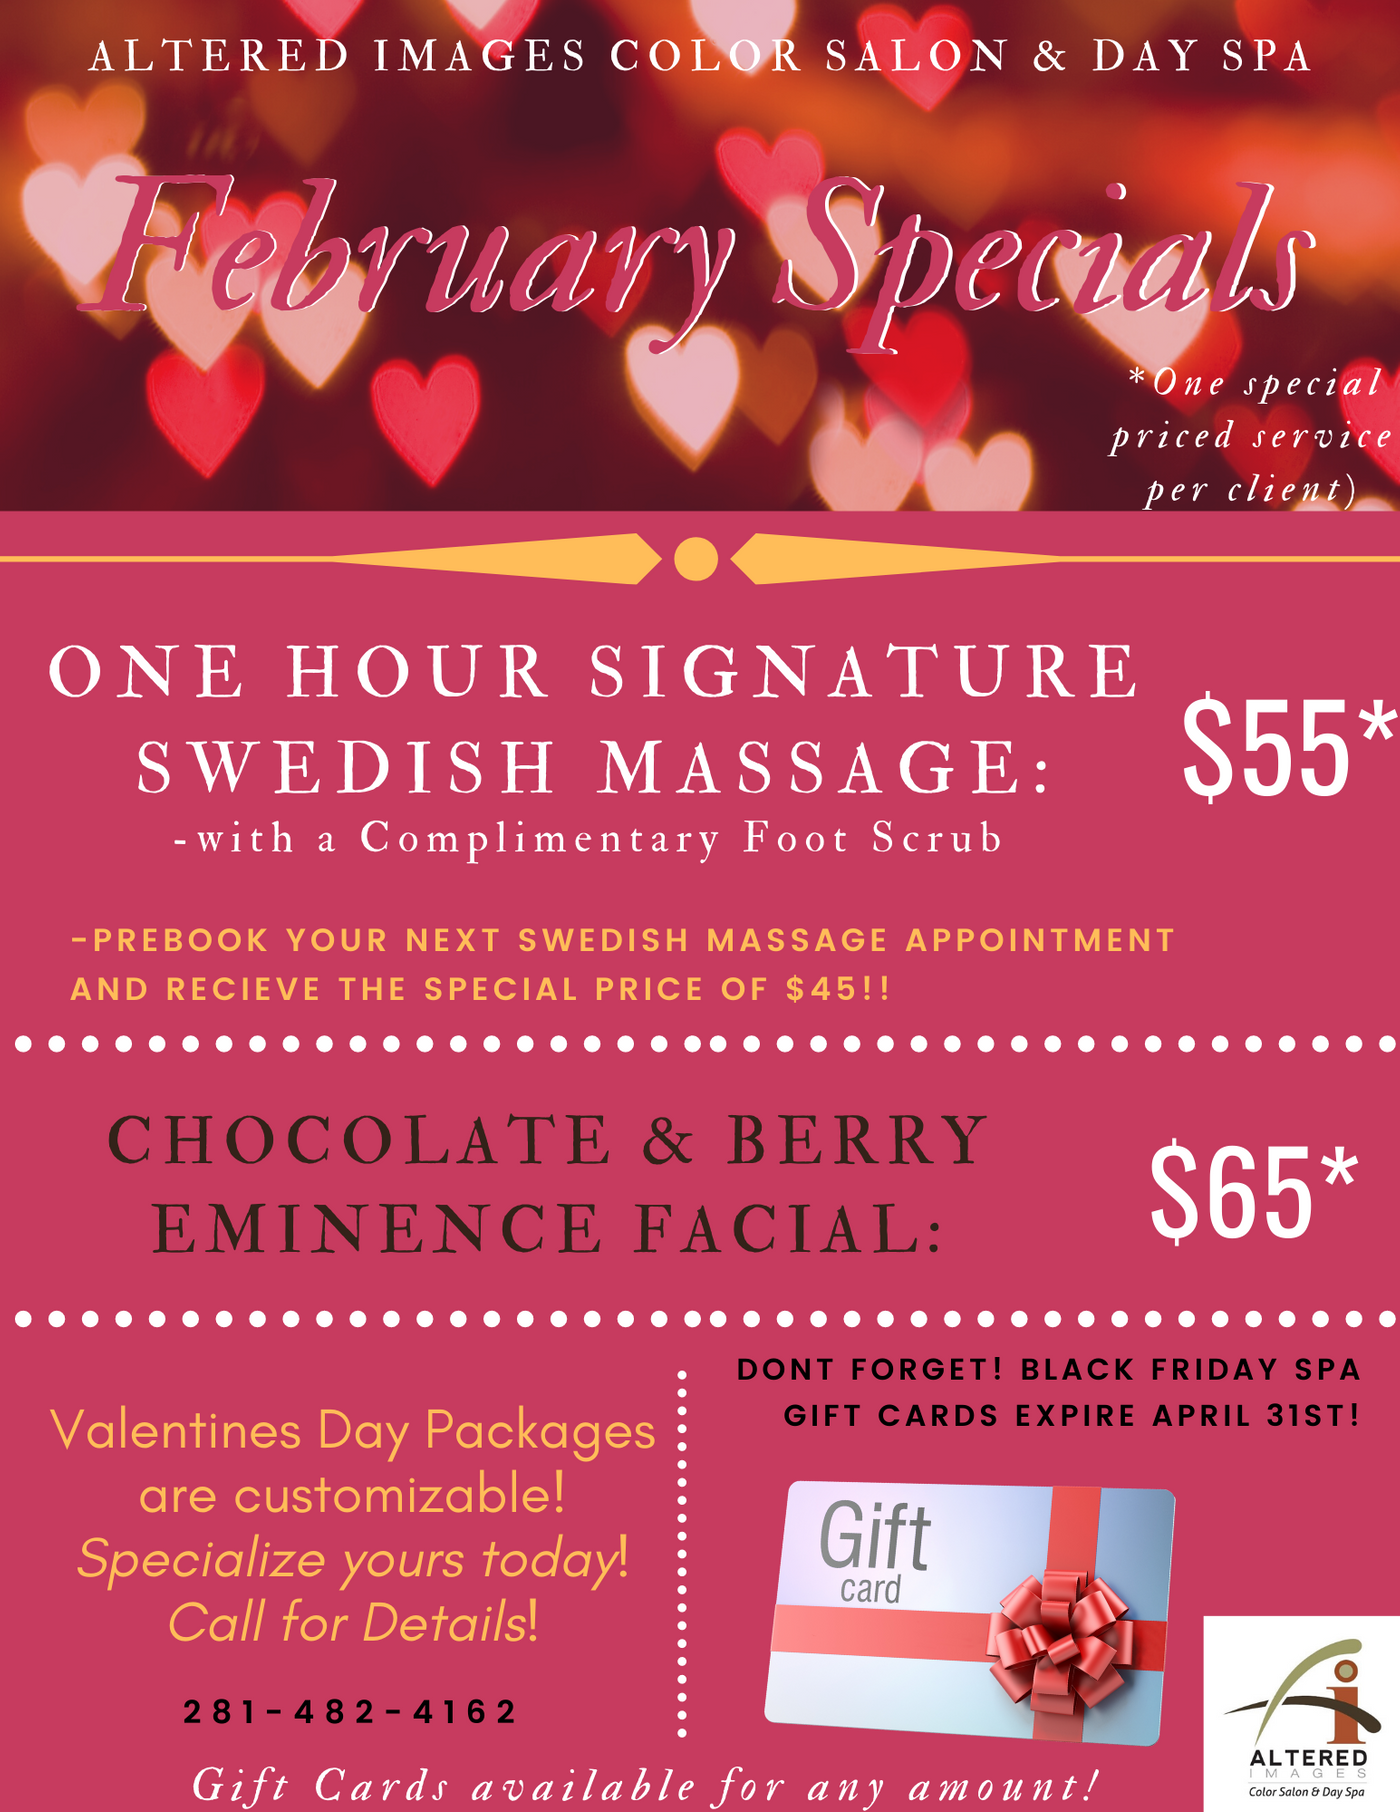 valentinespecial2020PINK (1).png